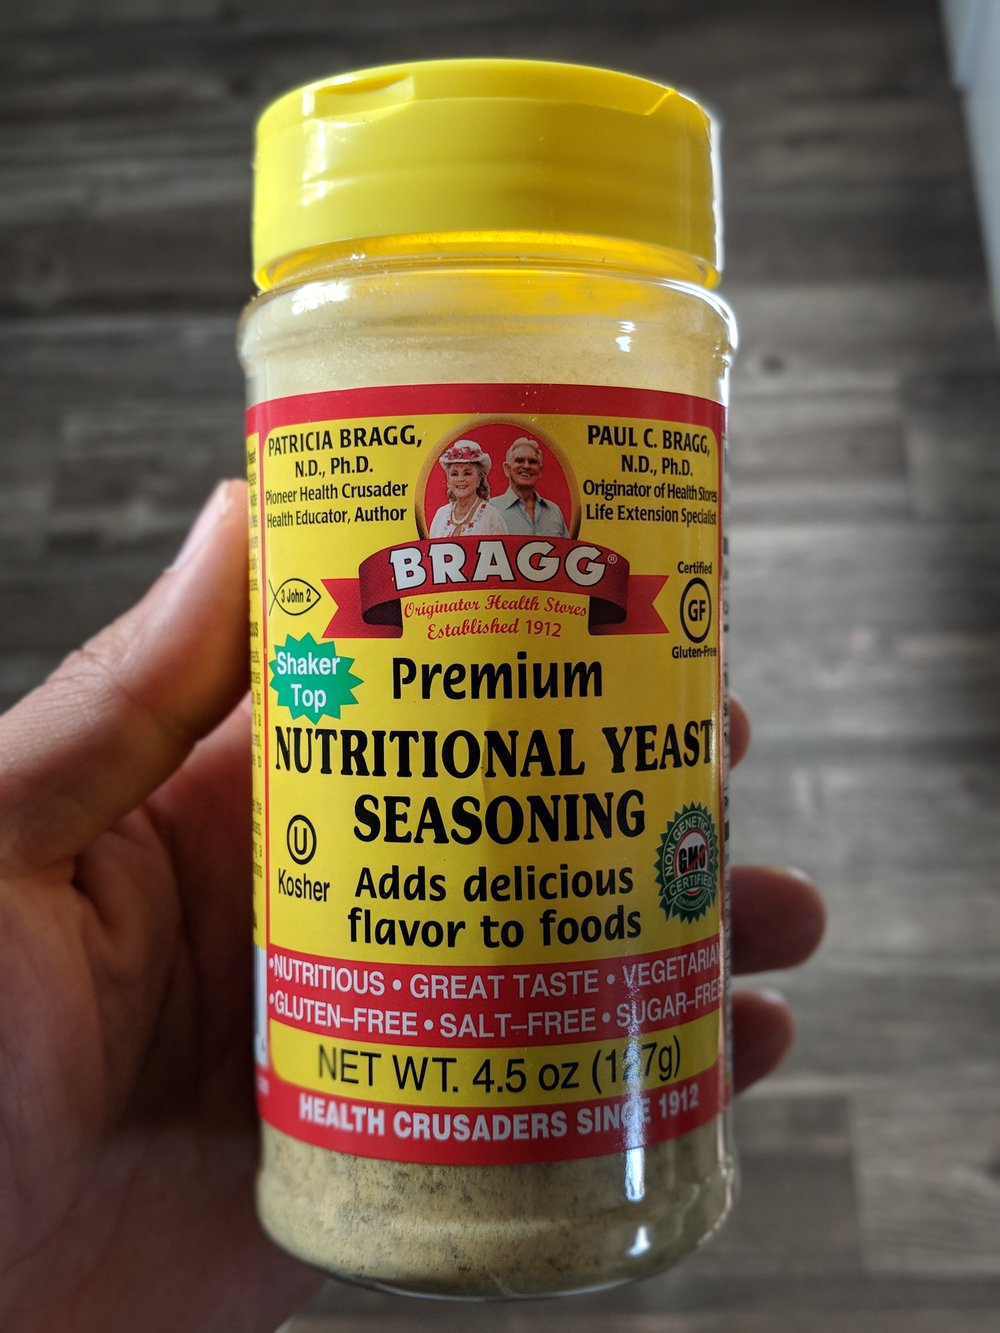 Nutritional Yeast - If you need to add a cheesy flavor to your dishes. Add it to soup for another layer of flavor. It also has B12.